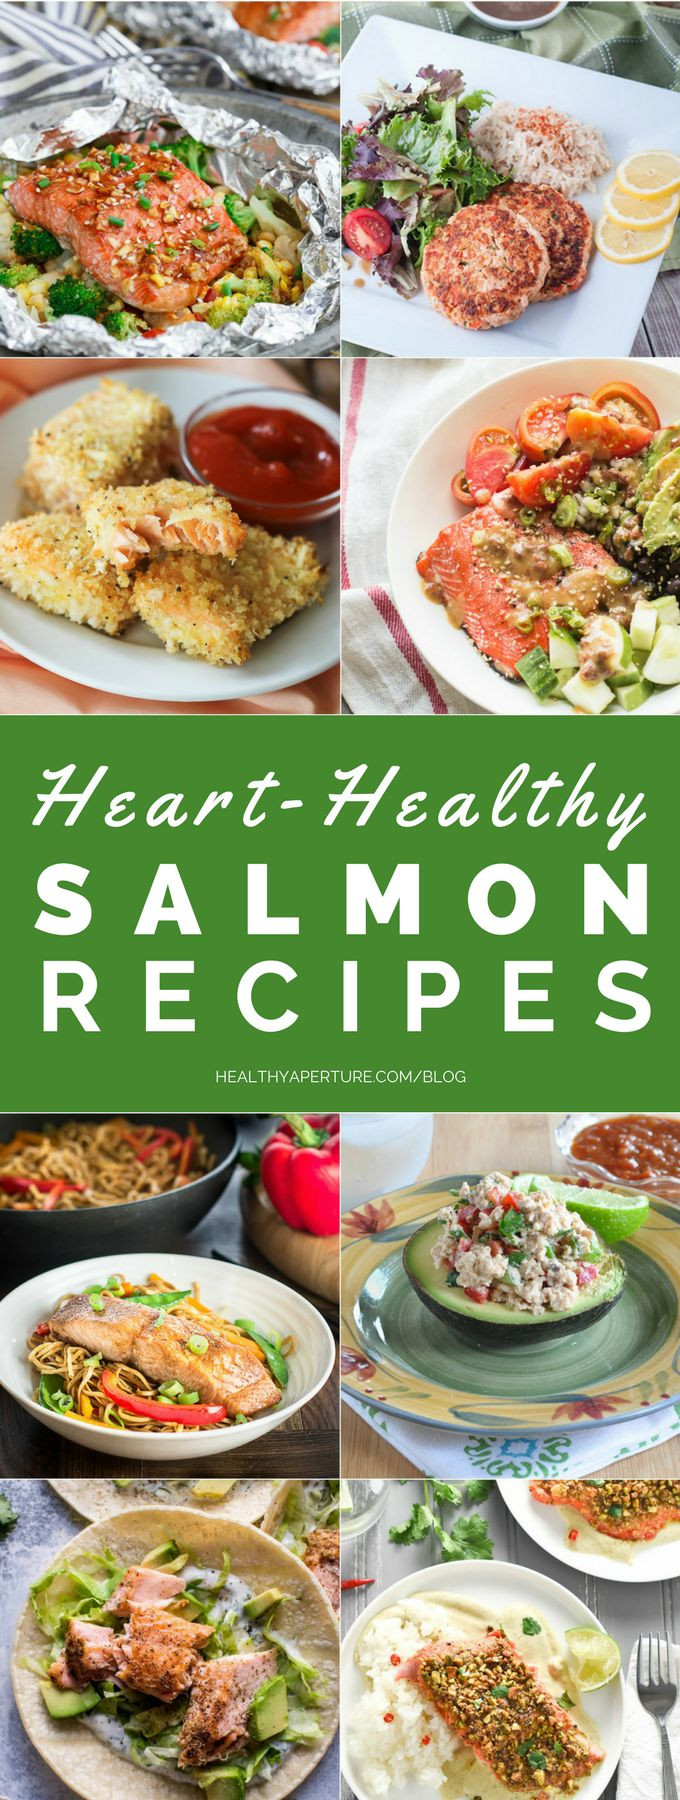 Heart Healthy Lunch Recipes  100 Heart healthy recipes on Pinterest